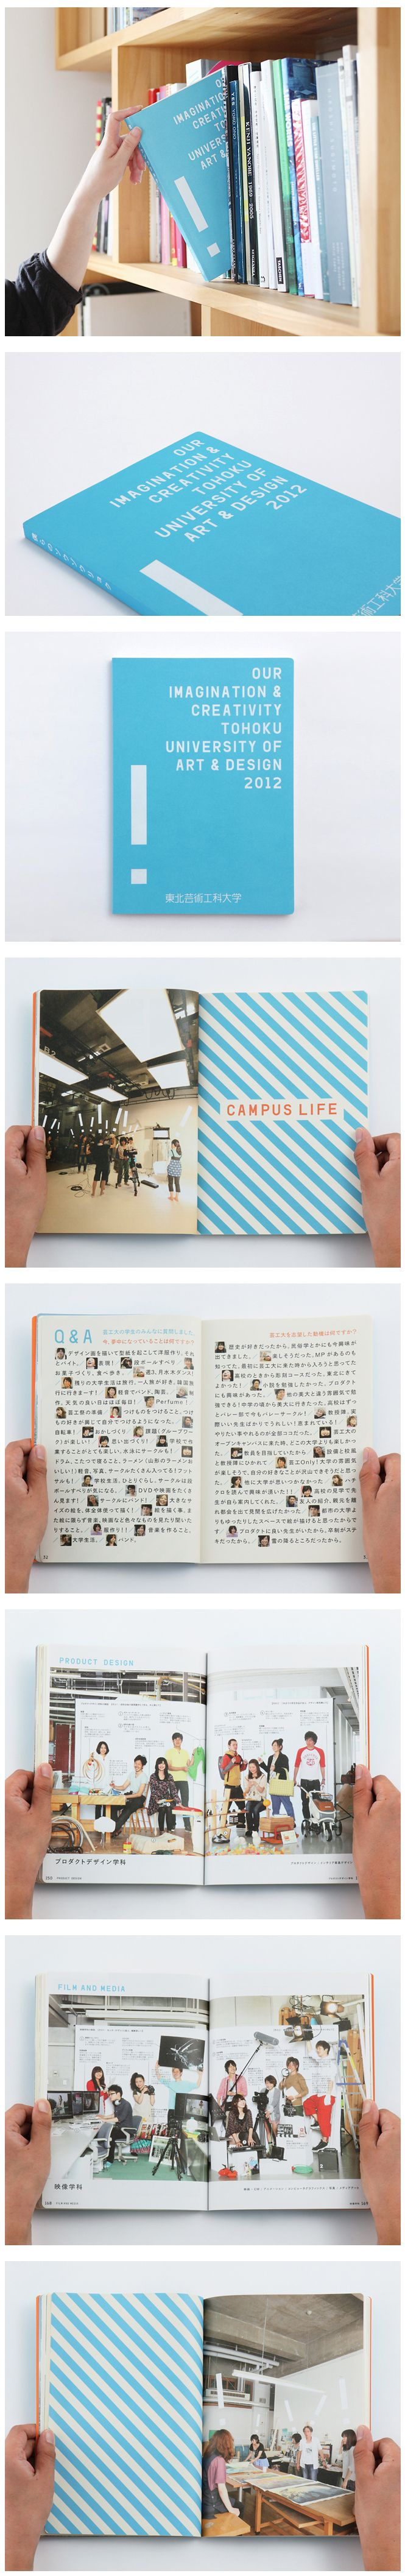 Client. TOHOKU UNIVERSITY OF ART & DESIGN Guide Book 2012 / Planning & Editorial Design 2011 Yamagata